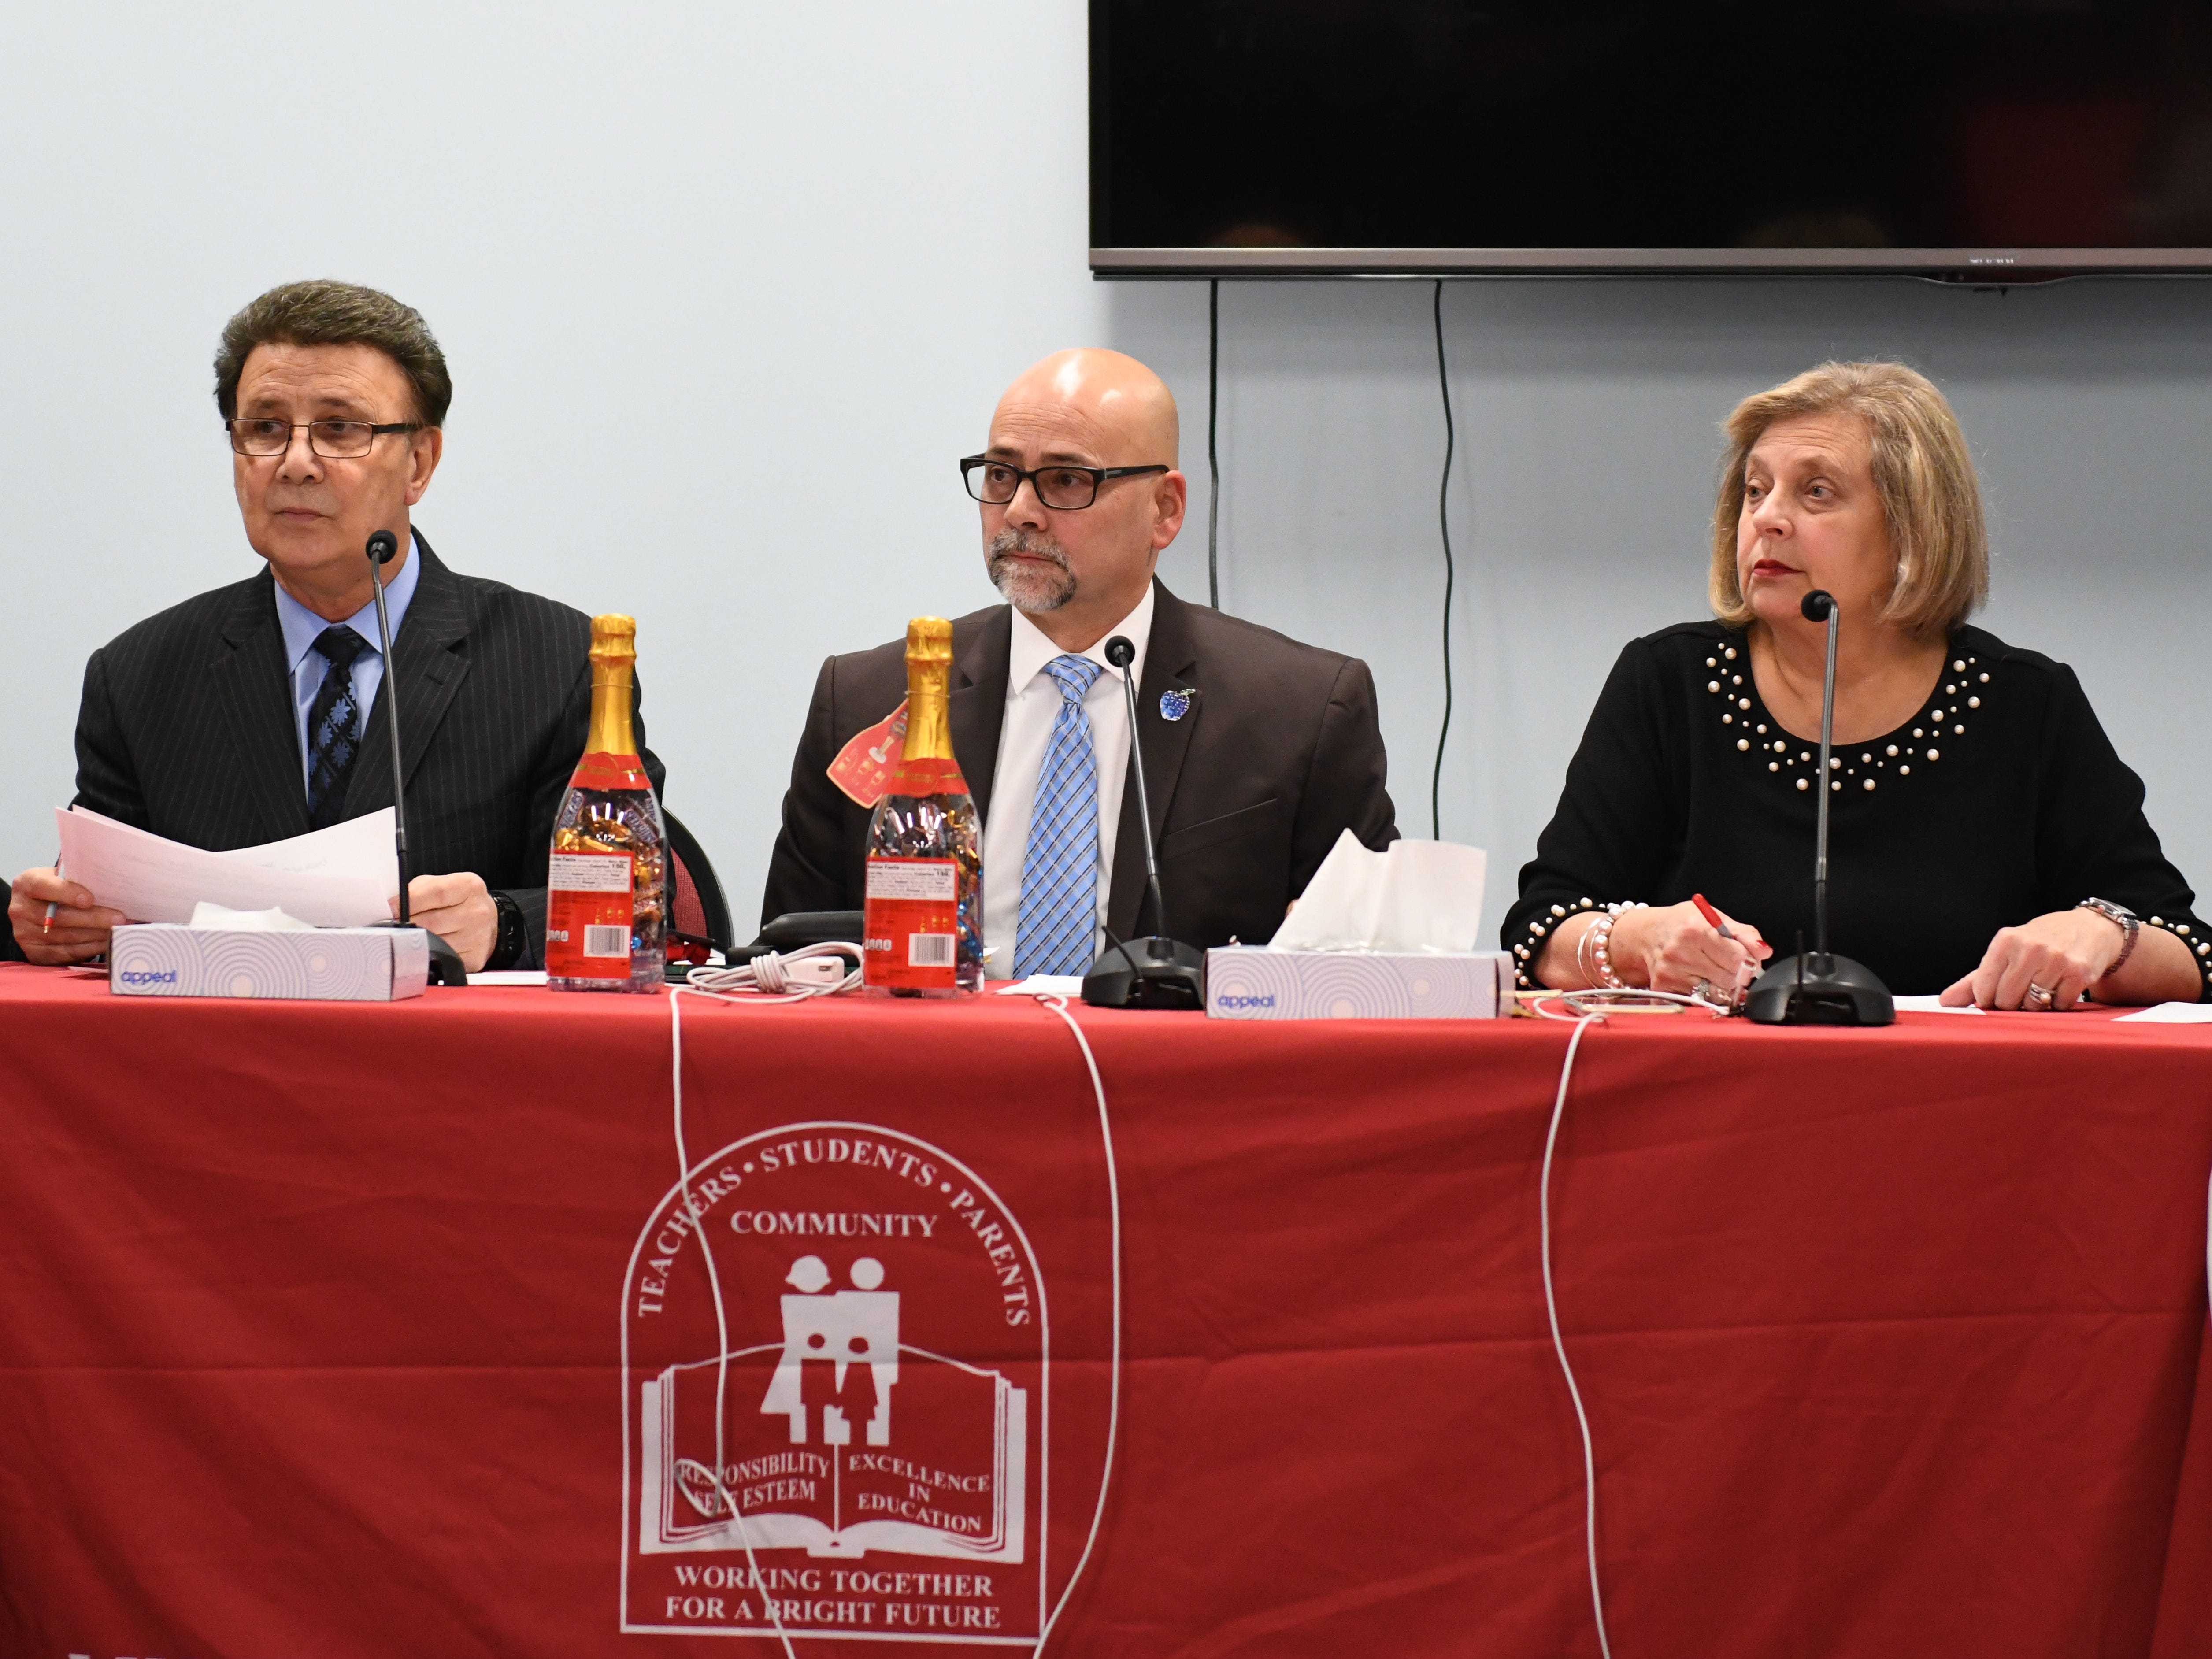 From left to right, Robert DeSanto, Scott E. English and Superintendent Mary Gruccio are seen here during a Vineland Board of Education reorganization meeting on Wednesday, January 2, 2019.